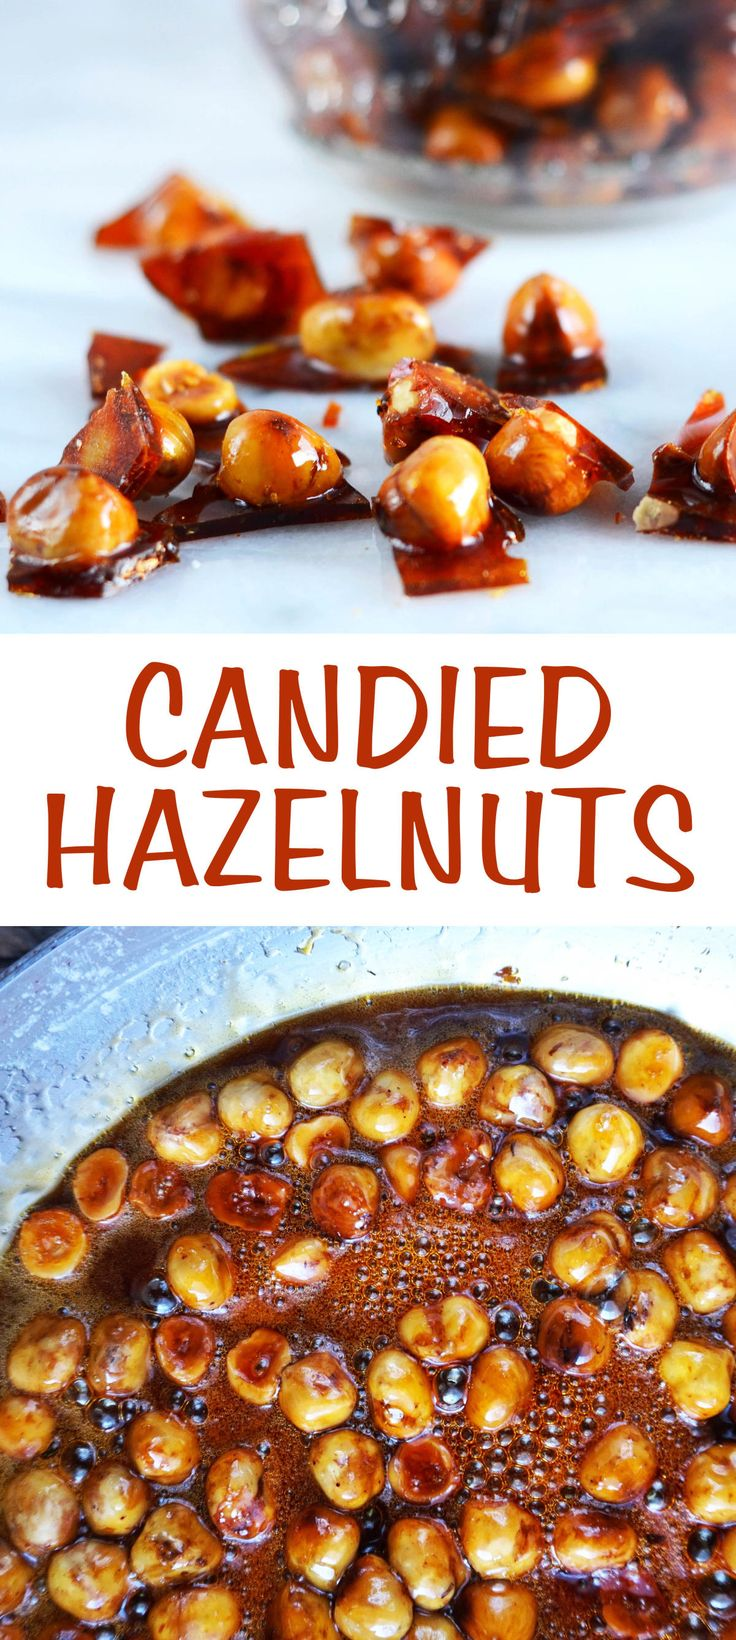 A easy and delicious recipe for candied hazelnuts. Eat these treats on their own, top your ice cream sundae with them or gift them to your friends.